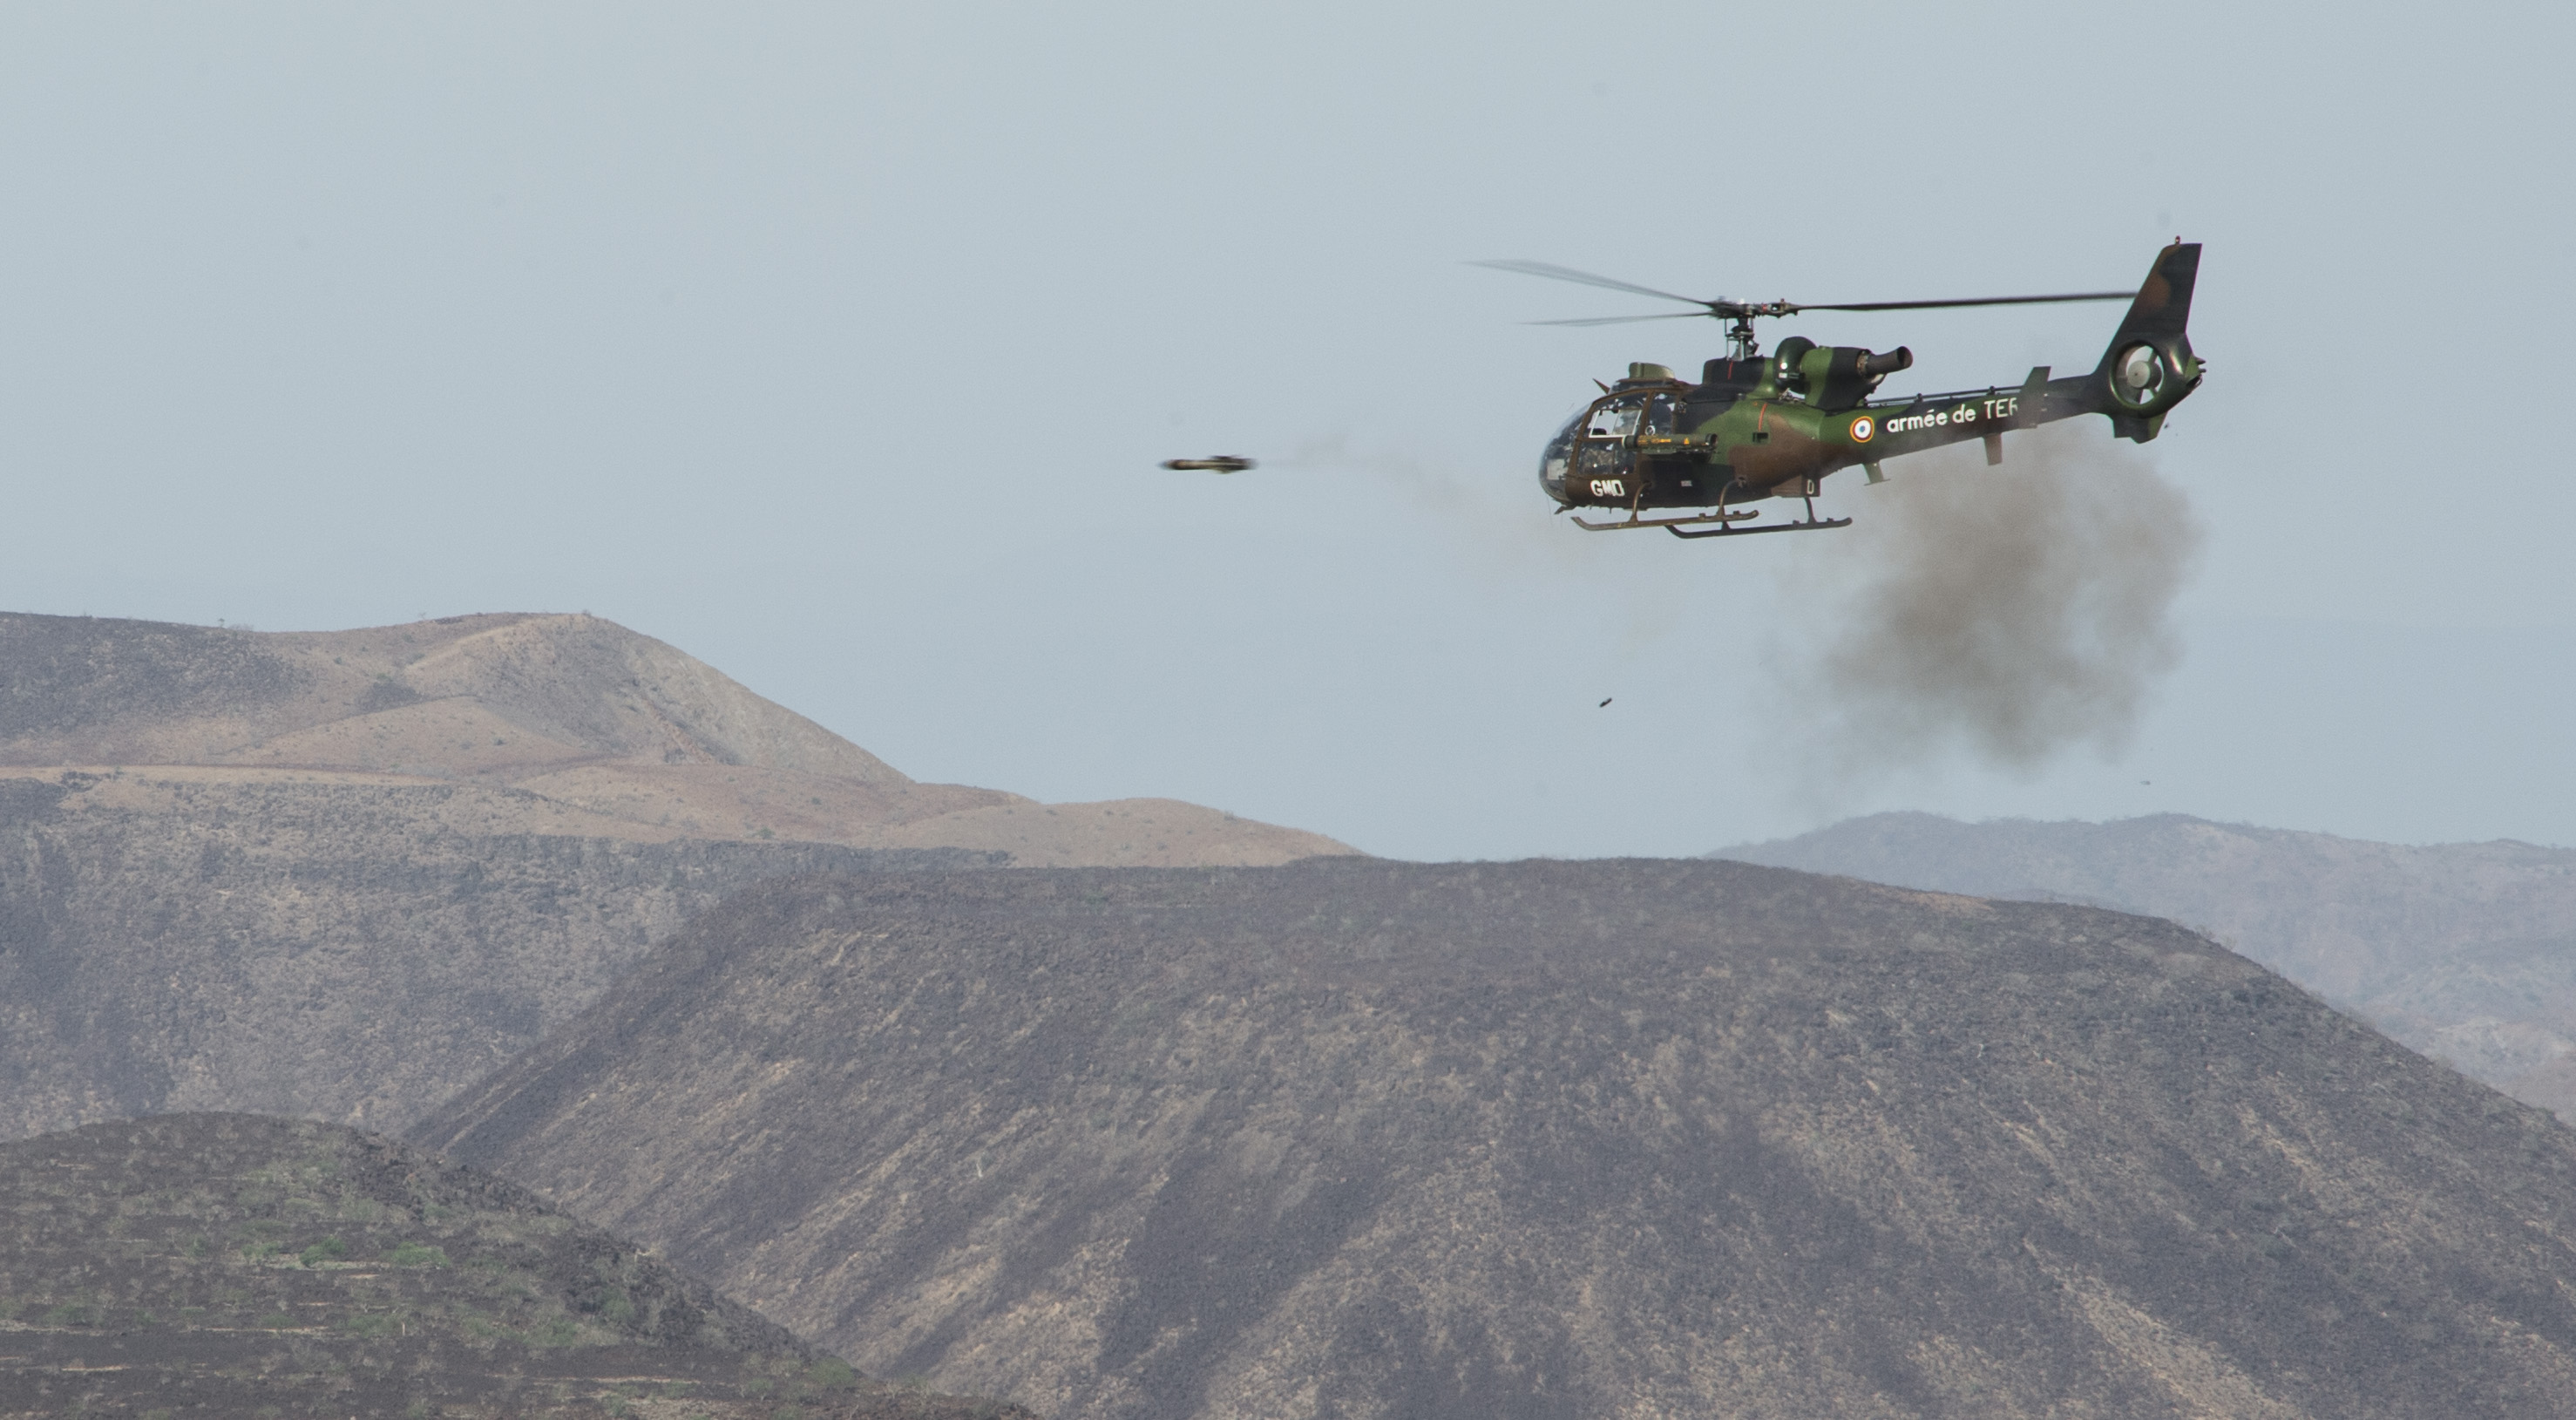 A French SA 342 Gazelle utility helicopter fires a live missile at simulated targets during the French live fire demonstration near Arta Plage, Djibouti, Jan. 14, 2017. The SA 342 Gazelle is a light, five-seat helicopter often used by various militaries for reconnaissance and light attack duties. (U.S. Air National Guard photo by:  Staff Sgt. Christian Jadot)